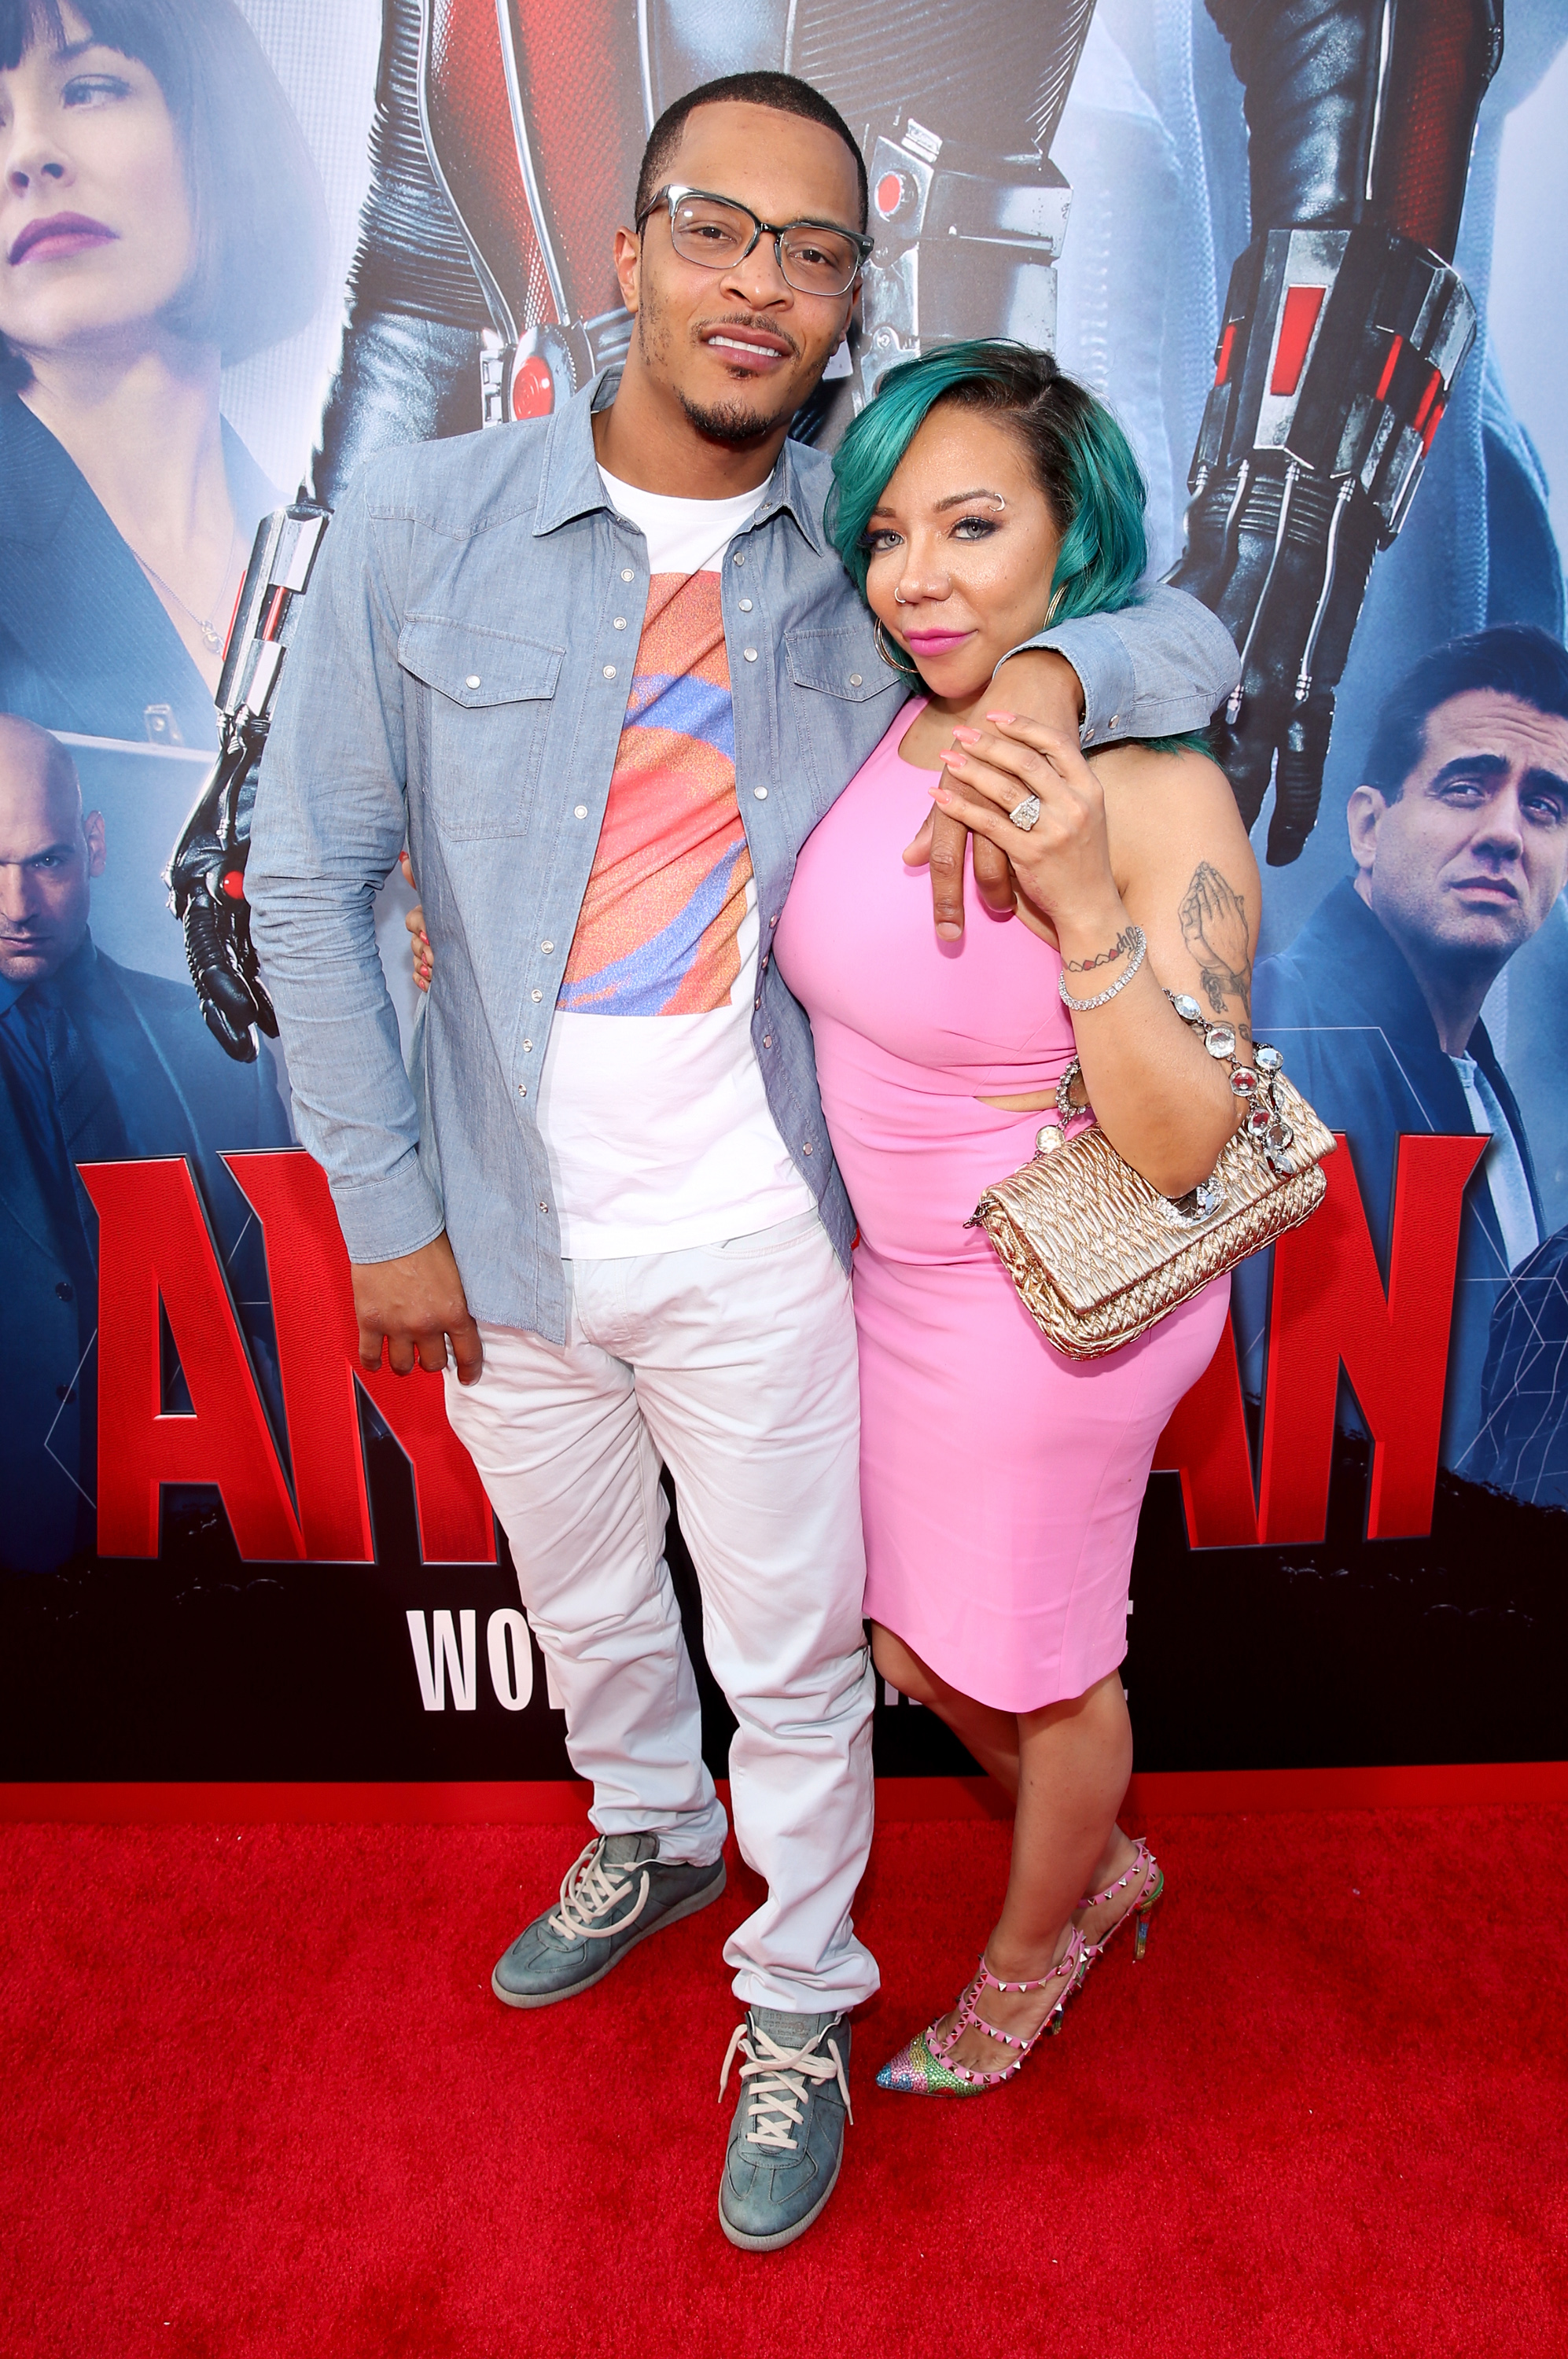 The World Premiere Of Marvel's 'Ant-Man' - Red Carpet